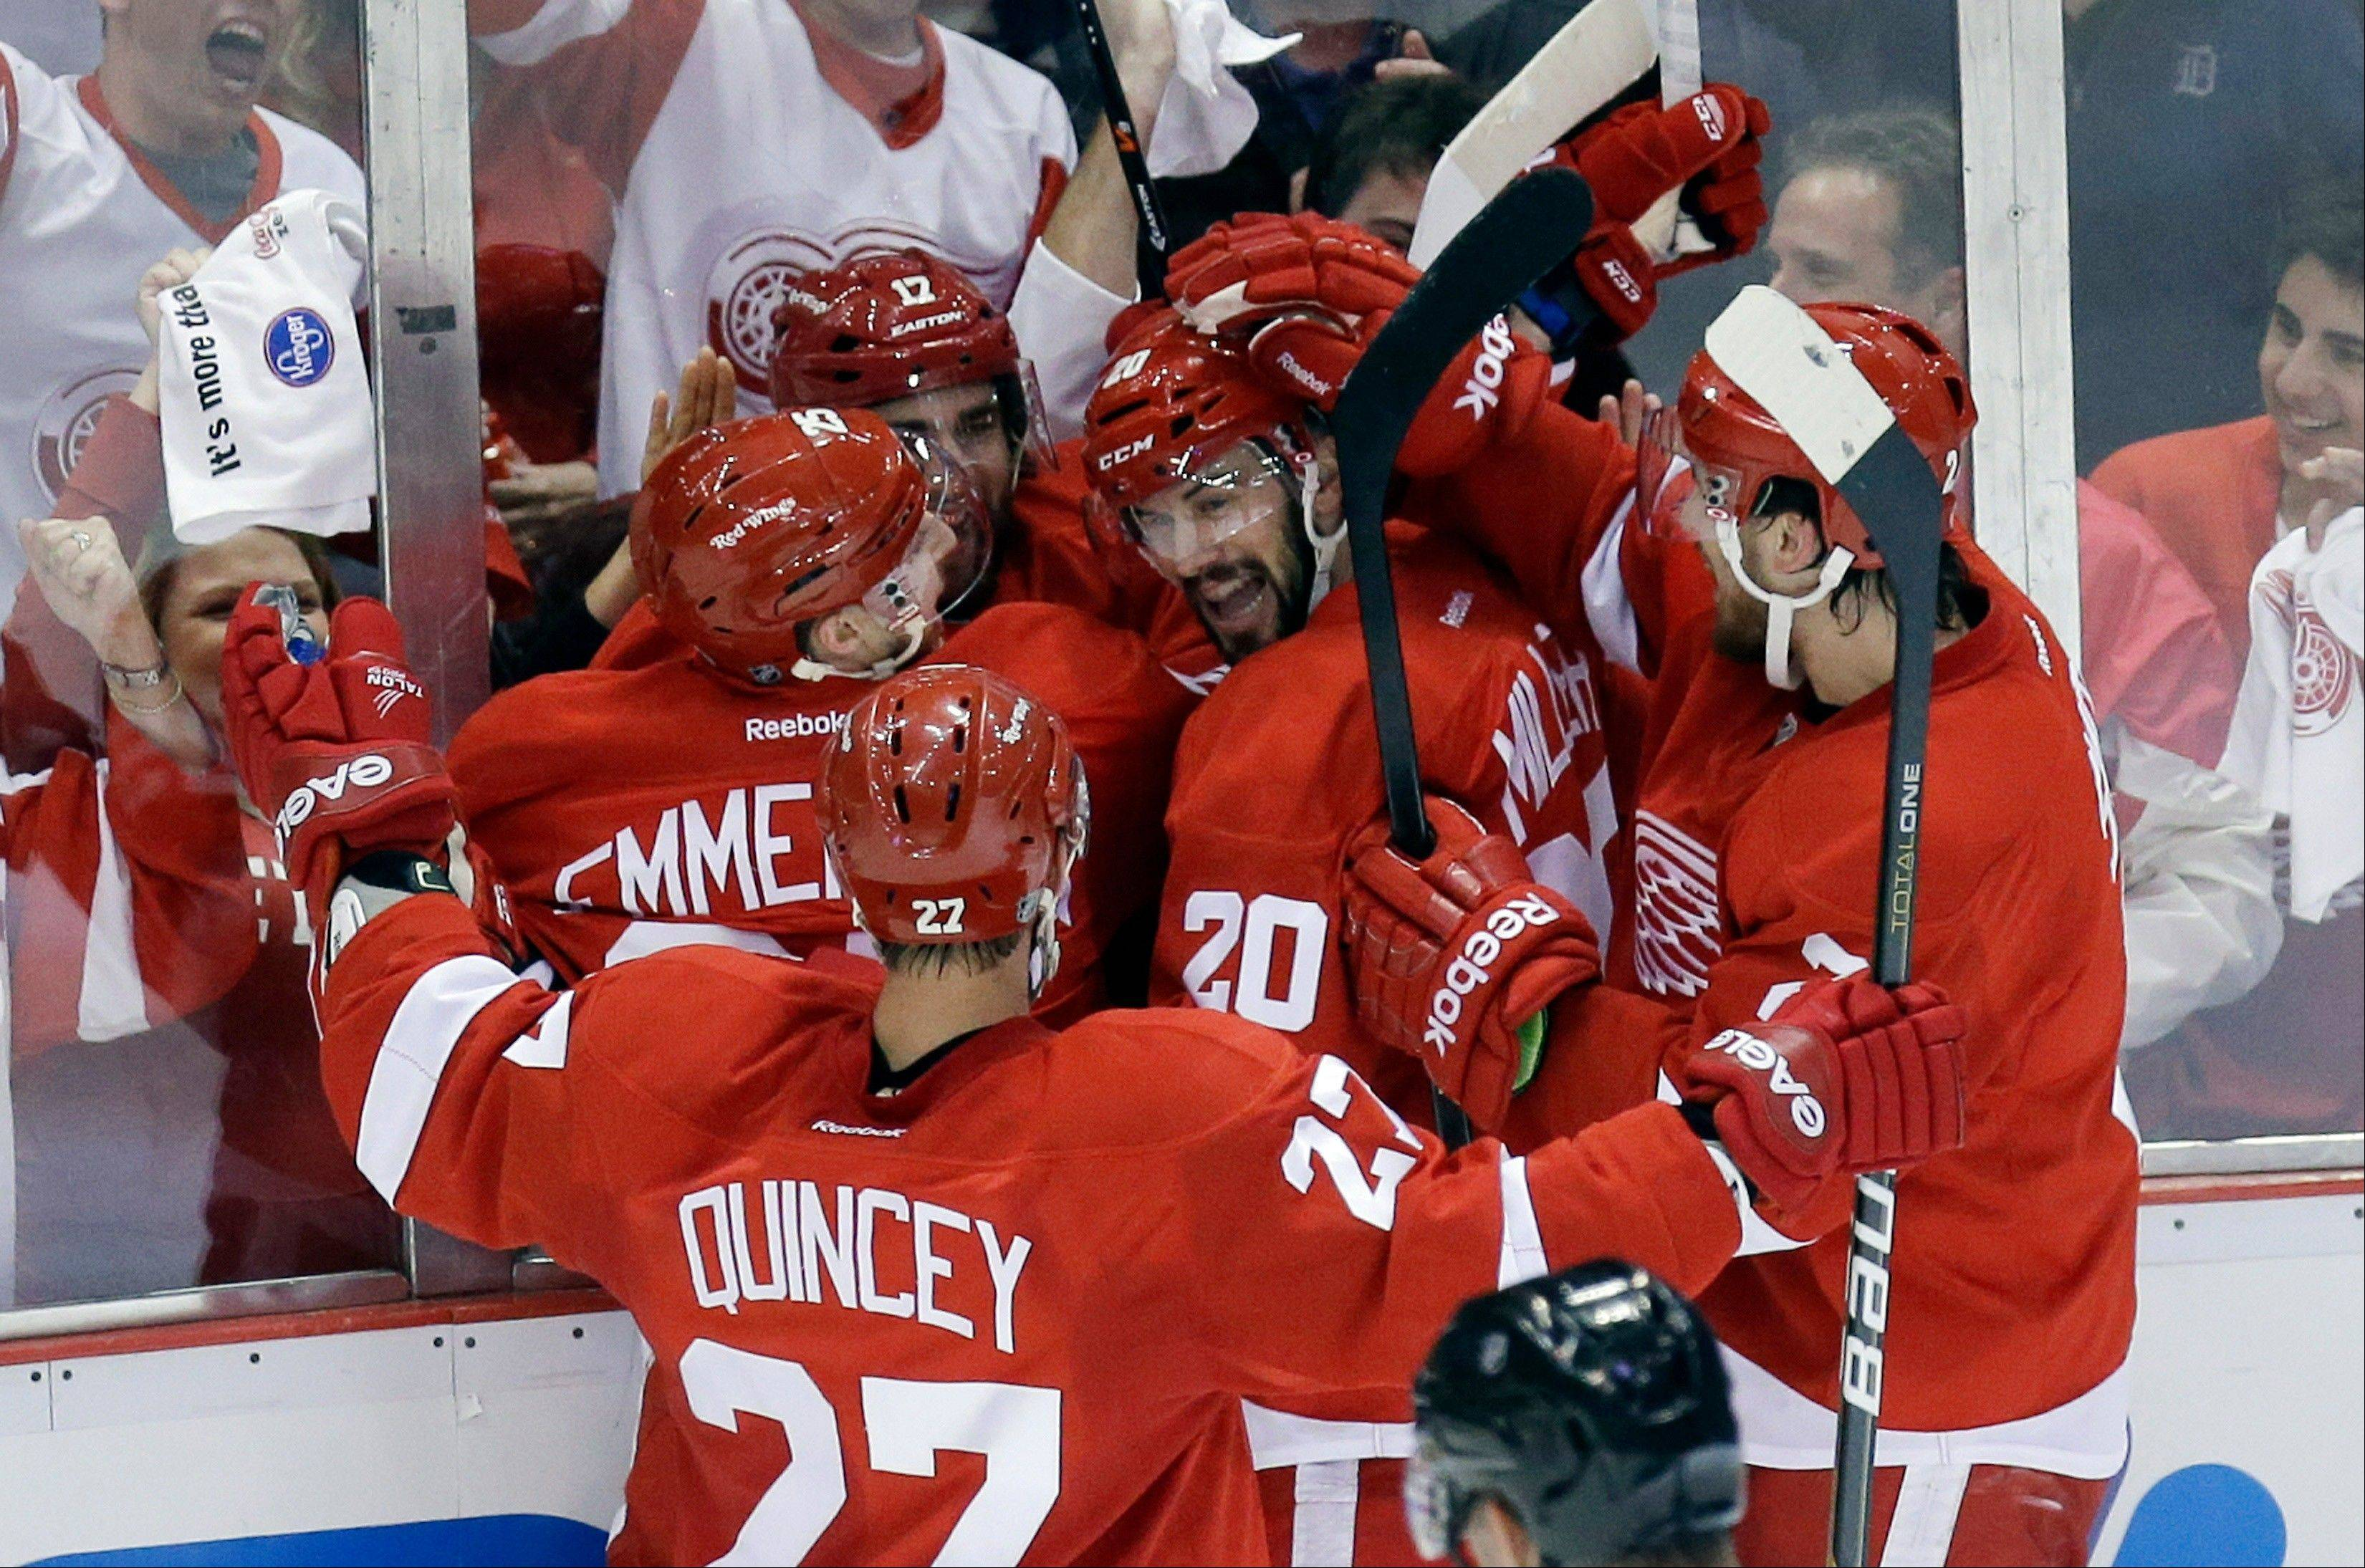 Detroit Red Wings right wing Patrick Eaves (17) celebrates his goal with teammates Cory Emmerton (25), Drew Miller (20), Kyle Quincey (27) and Brendan Smith, right, during the first period of Game 6 of the NHL hockey Stanley Cup playoffs Western Conference semifinals against the Chicago Blackhawks in Detroit, Monday, May 27, 2013.